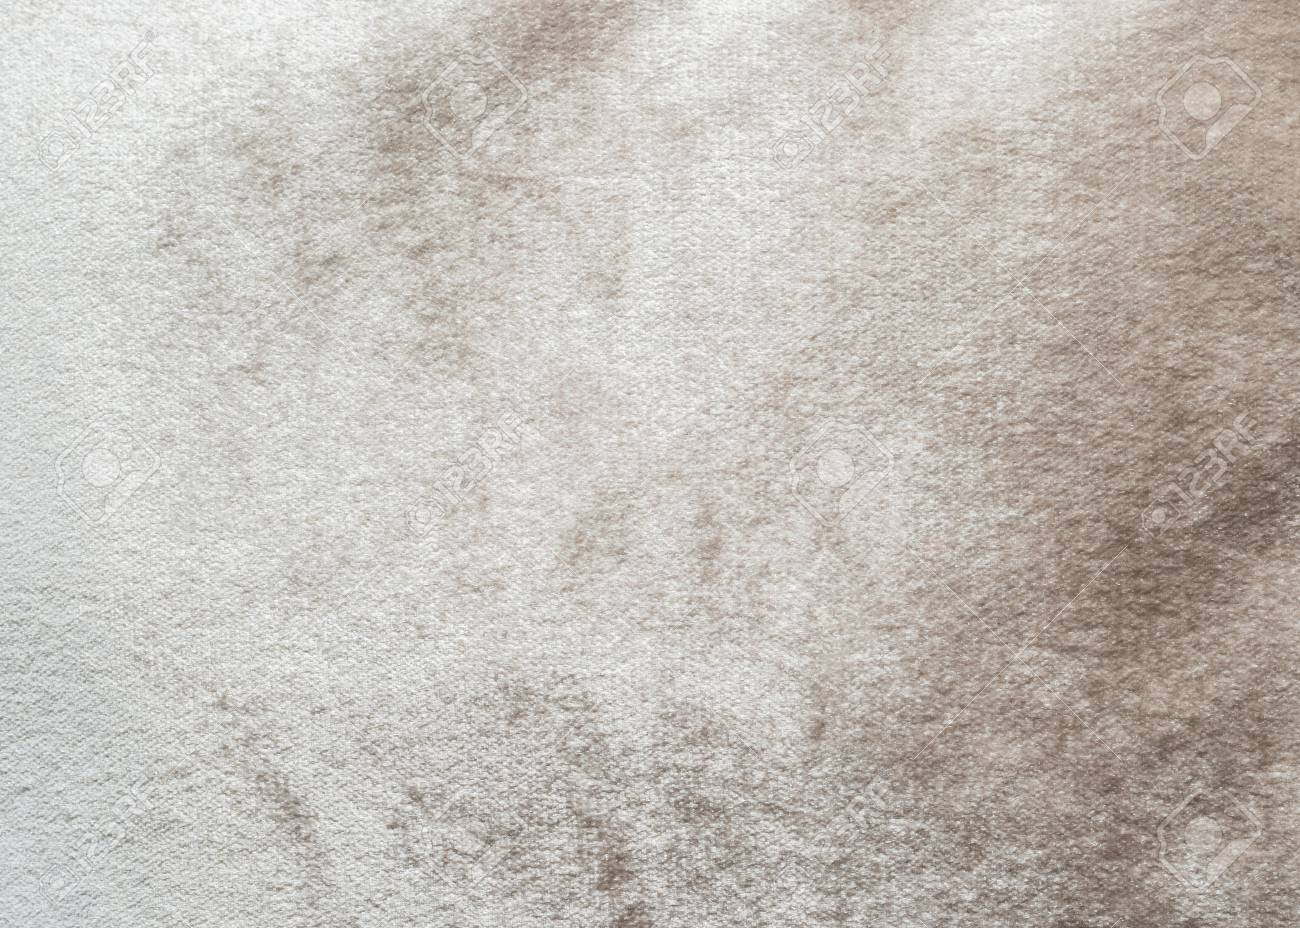 Beige Gold Velvet Background Or Velour Flannel Texture Made Of Stock Photo Picture And Royalty Free Image Image 116069543